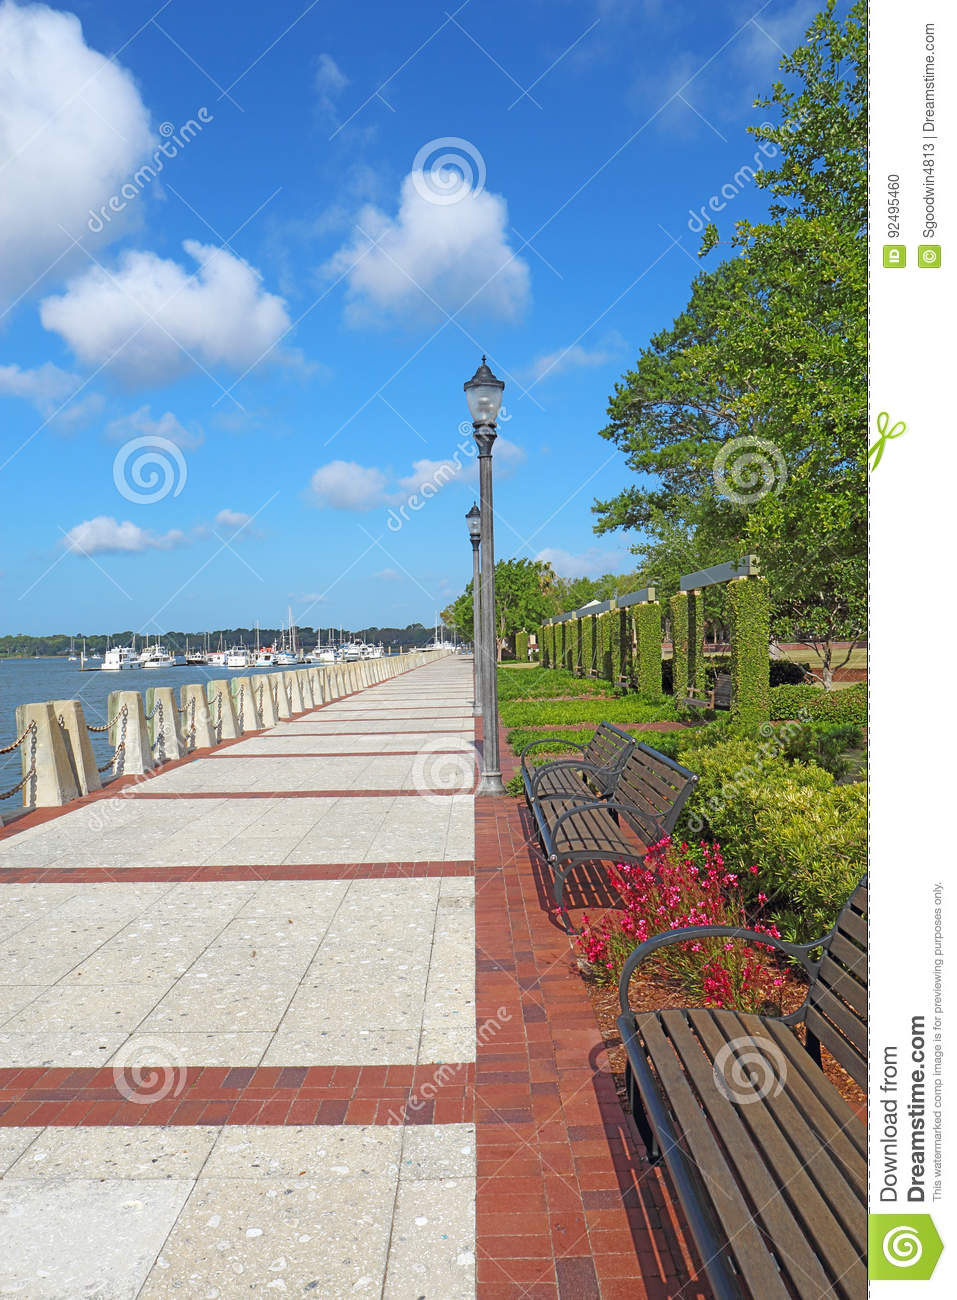 Promenade on the waterfront of Beaufort, South Carolina vertical